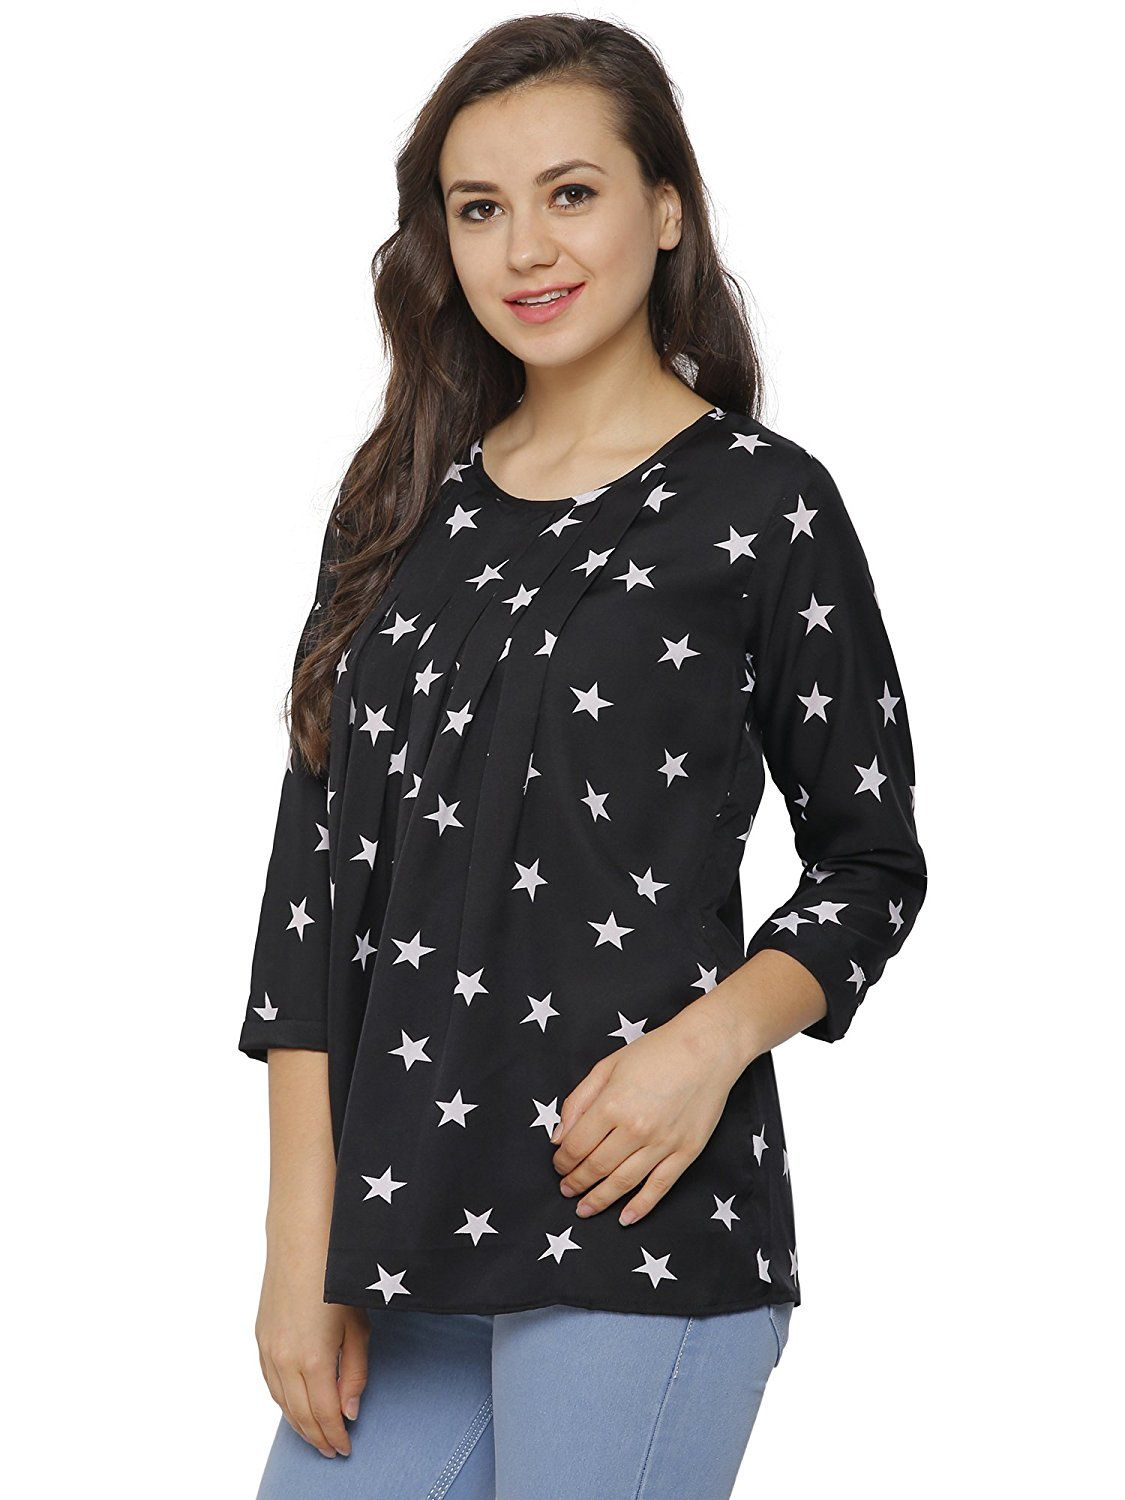 1557a82af37d36 Indietoga Plus size Girls Crepe Star print box pleat black long sleeve  casual top for women